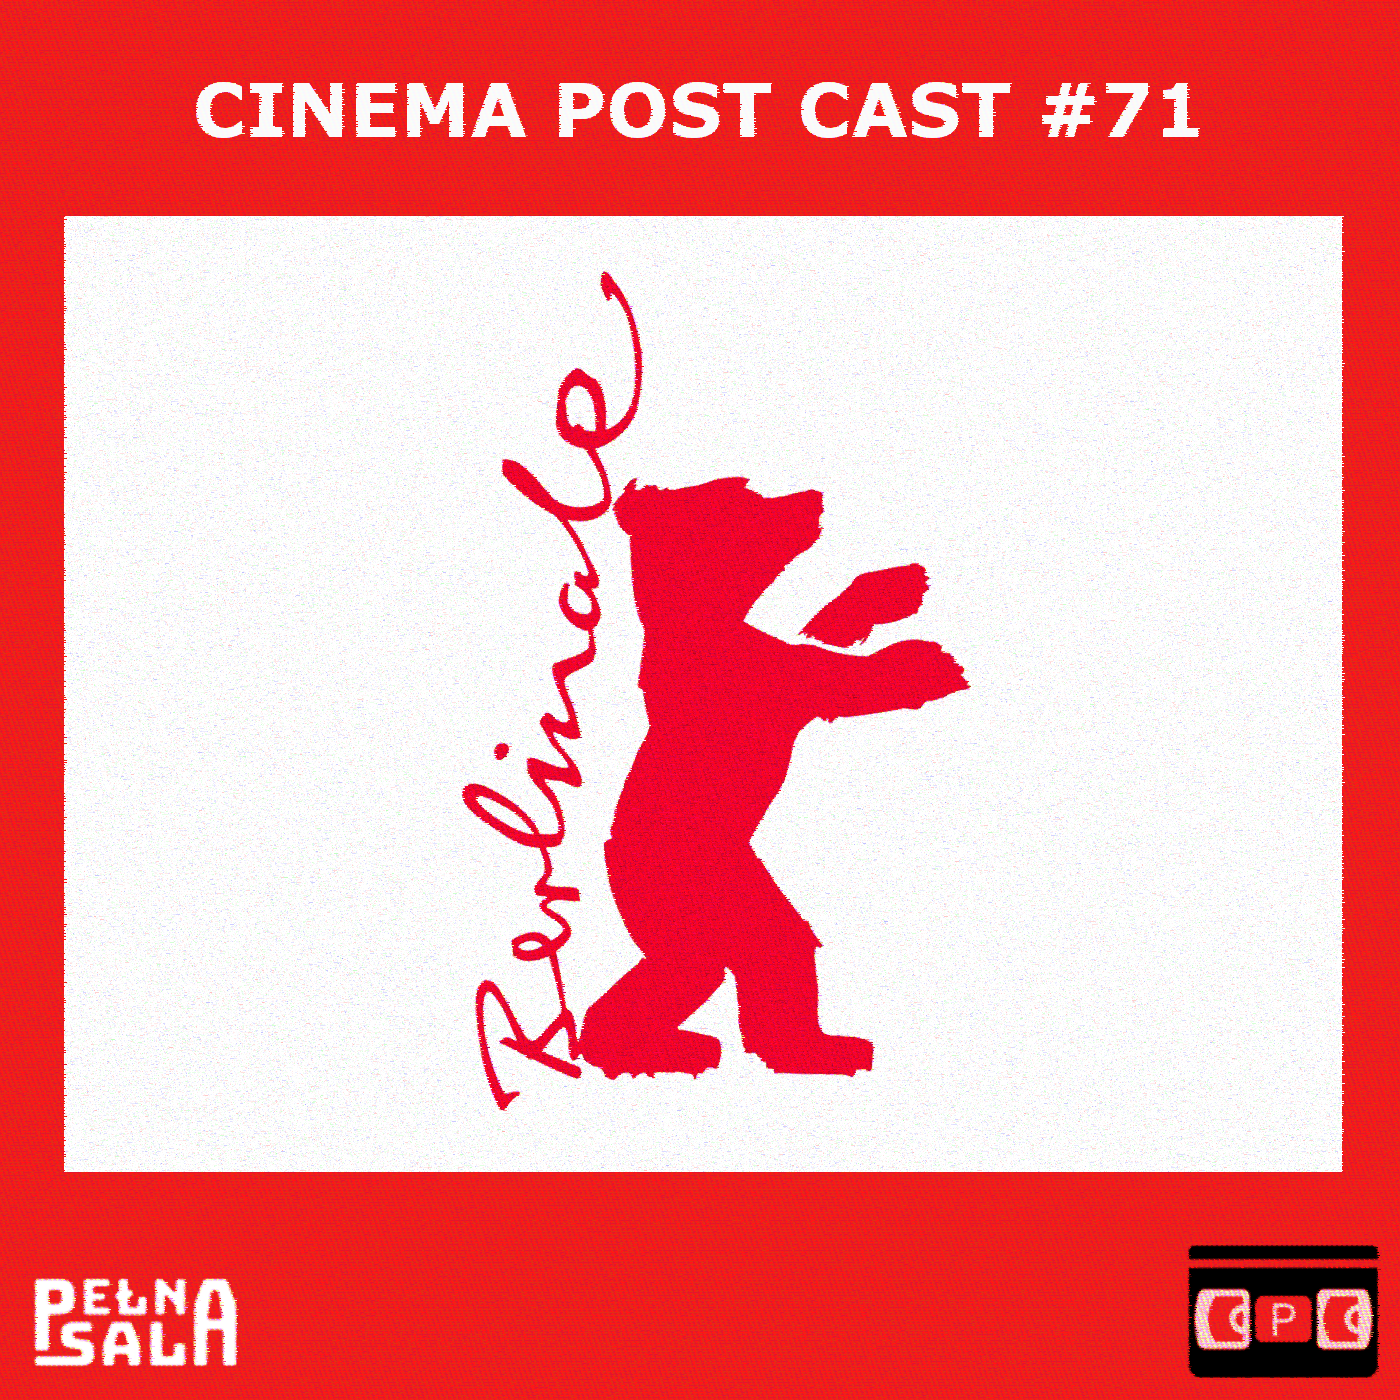 Cinema Post Cast #71: Berlinale 2019